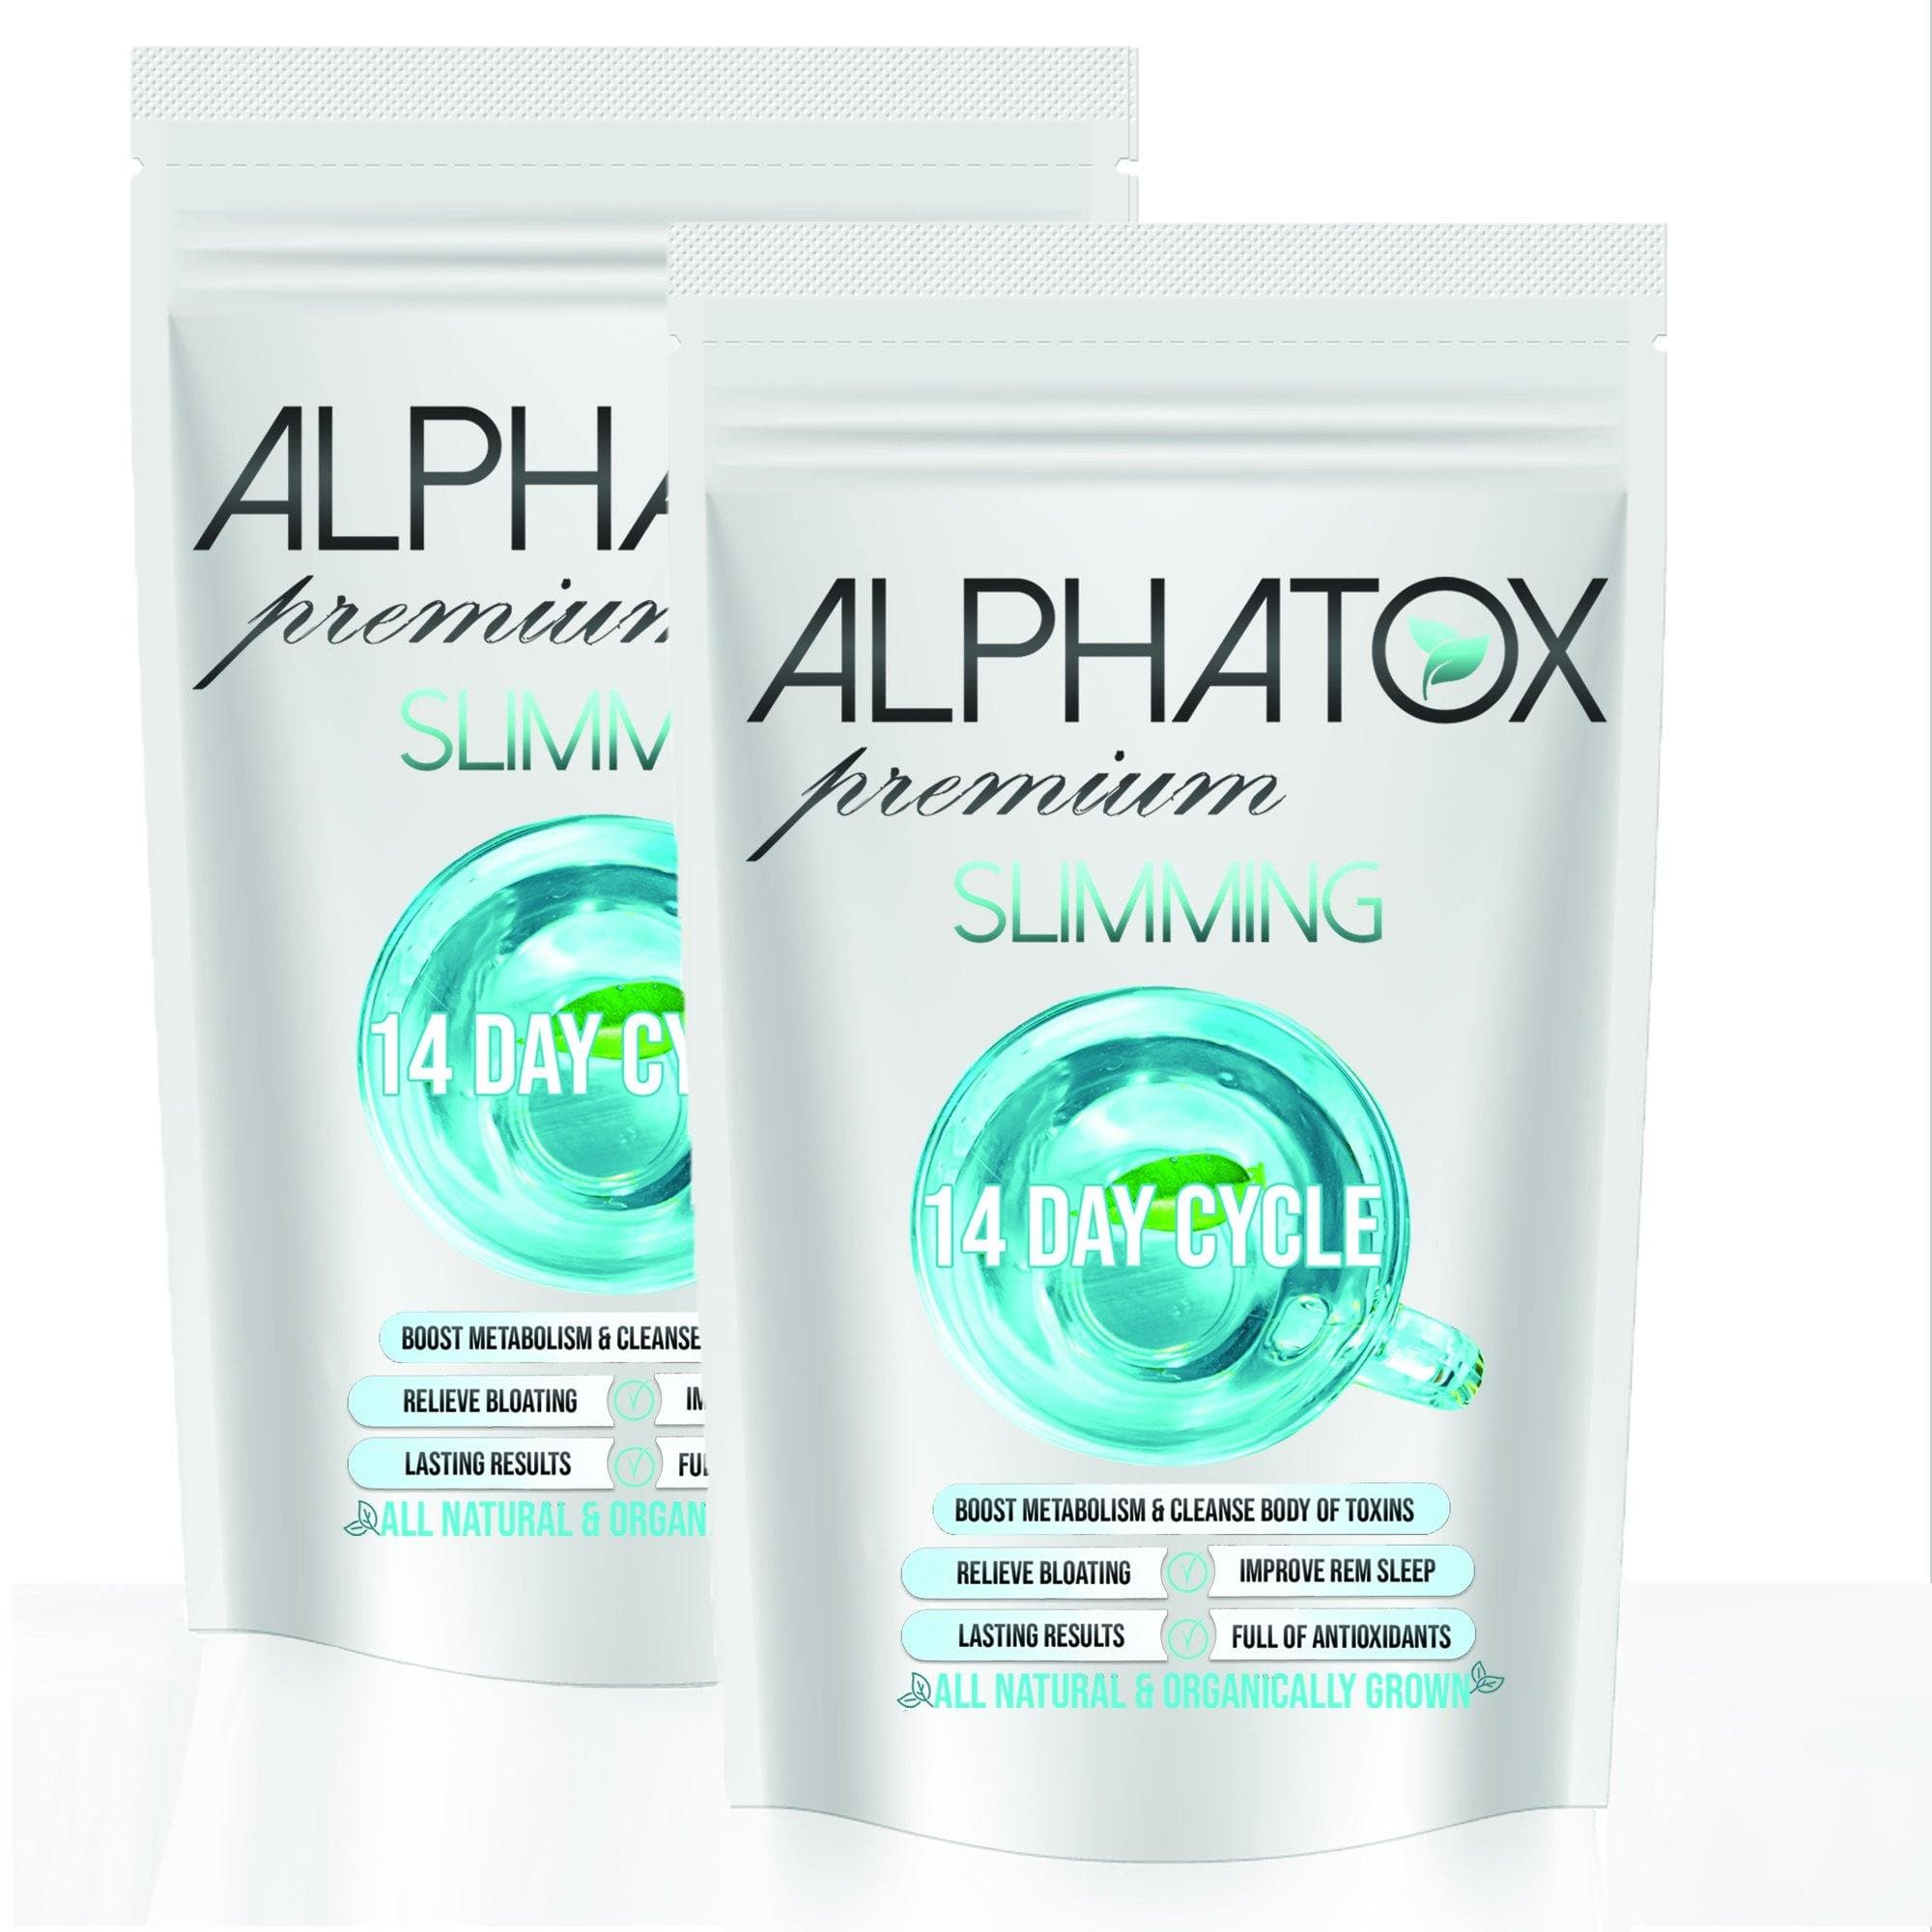 Alphatox Slimming Tea (28 Day) - Alphatox Premium Fitness Teas